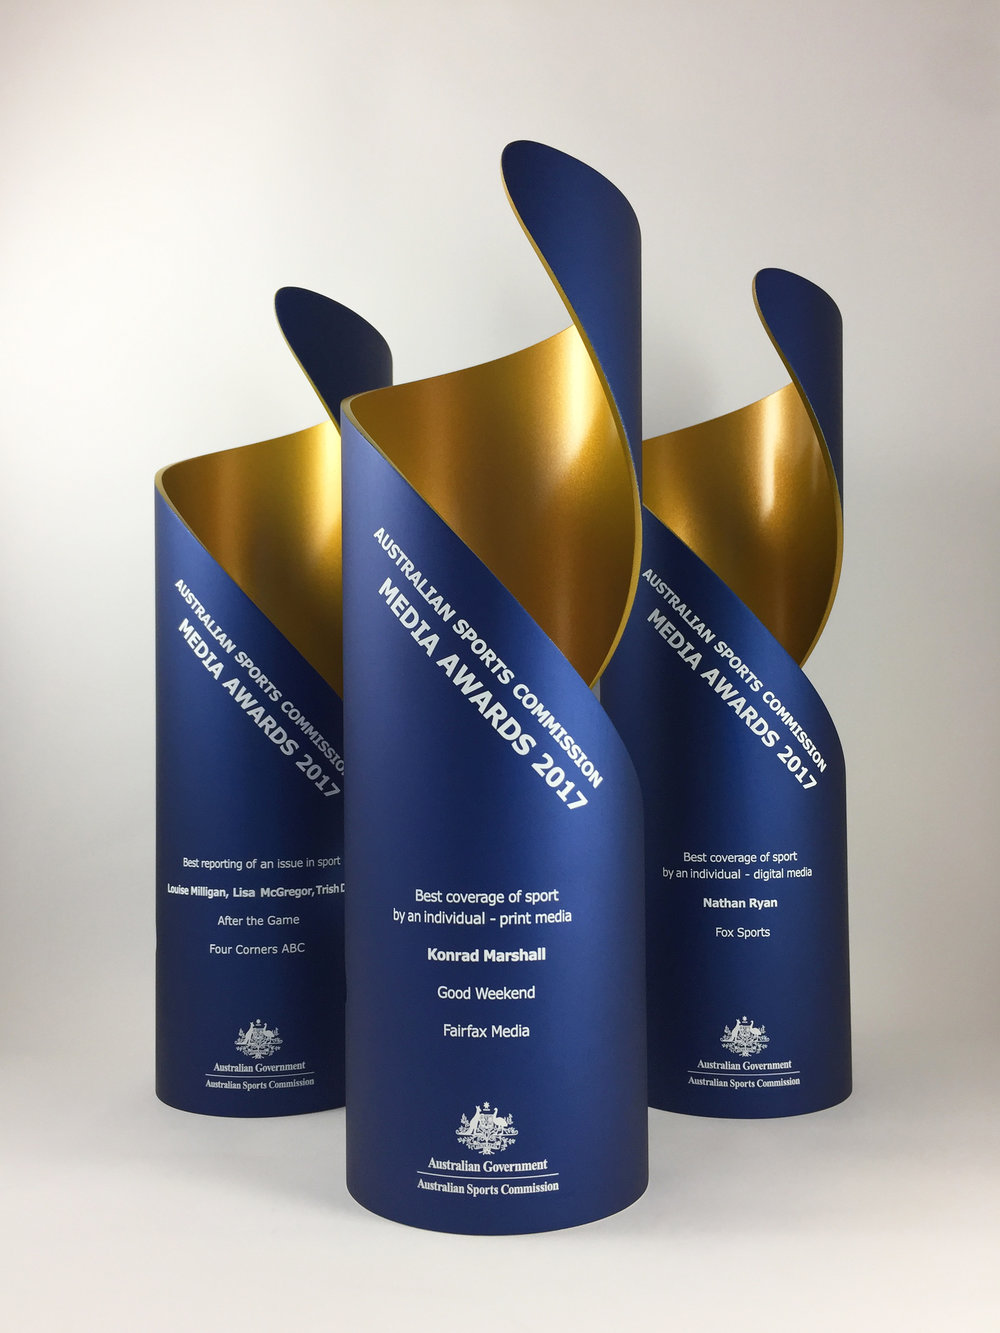 Australian-sporting-commission-media-awards-aluminium-thropy-02.jpg